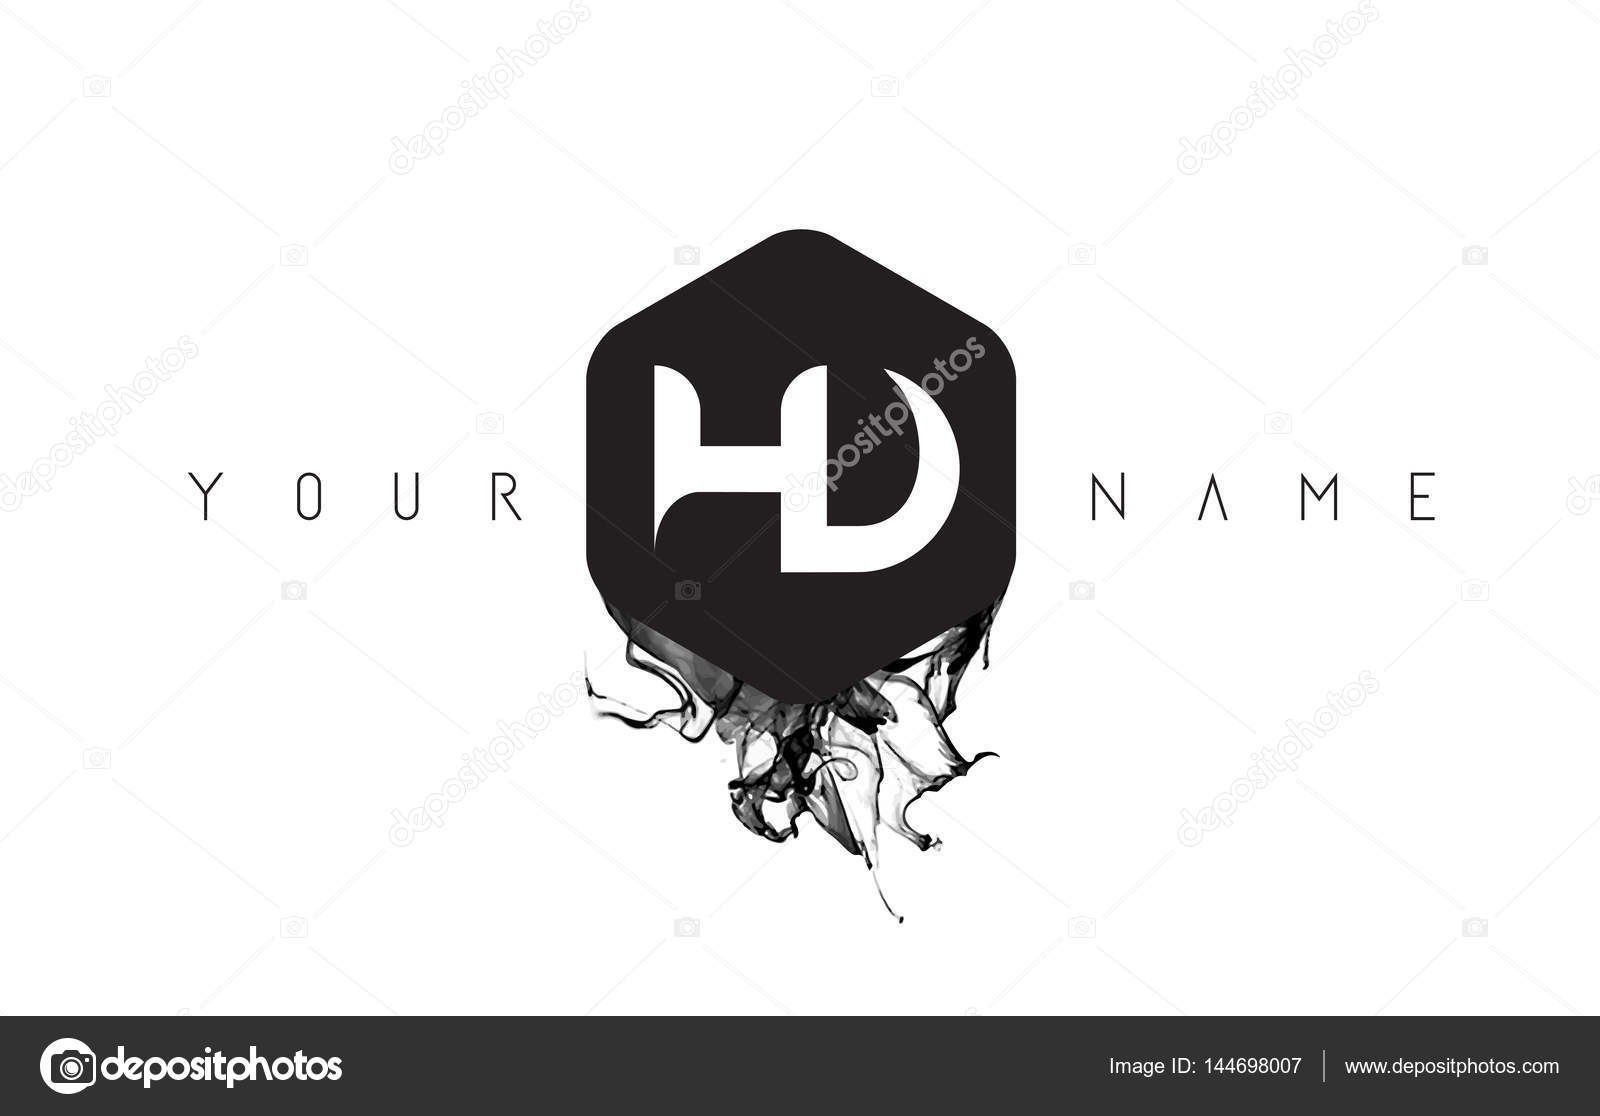 Hd letter logo design with black ink spill stock vector hd letter logo design with black ink spill stock vector thecheapjerseys Images